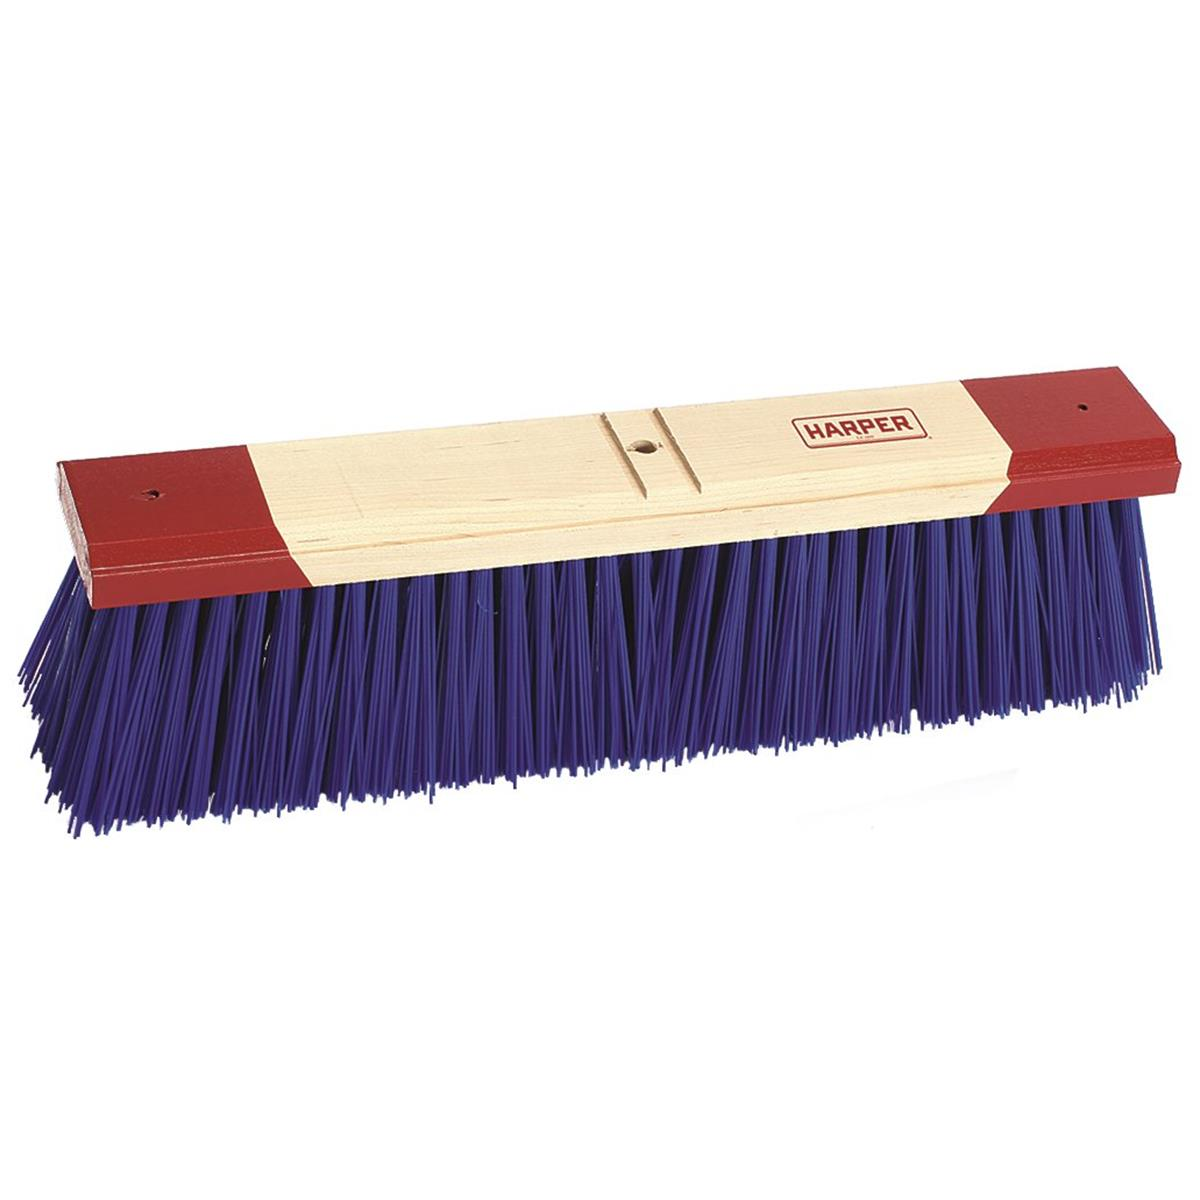 #94 Heavy-Duty, Plastic Bristle Sweeping Broom